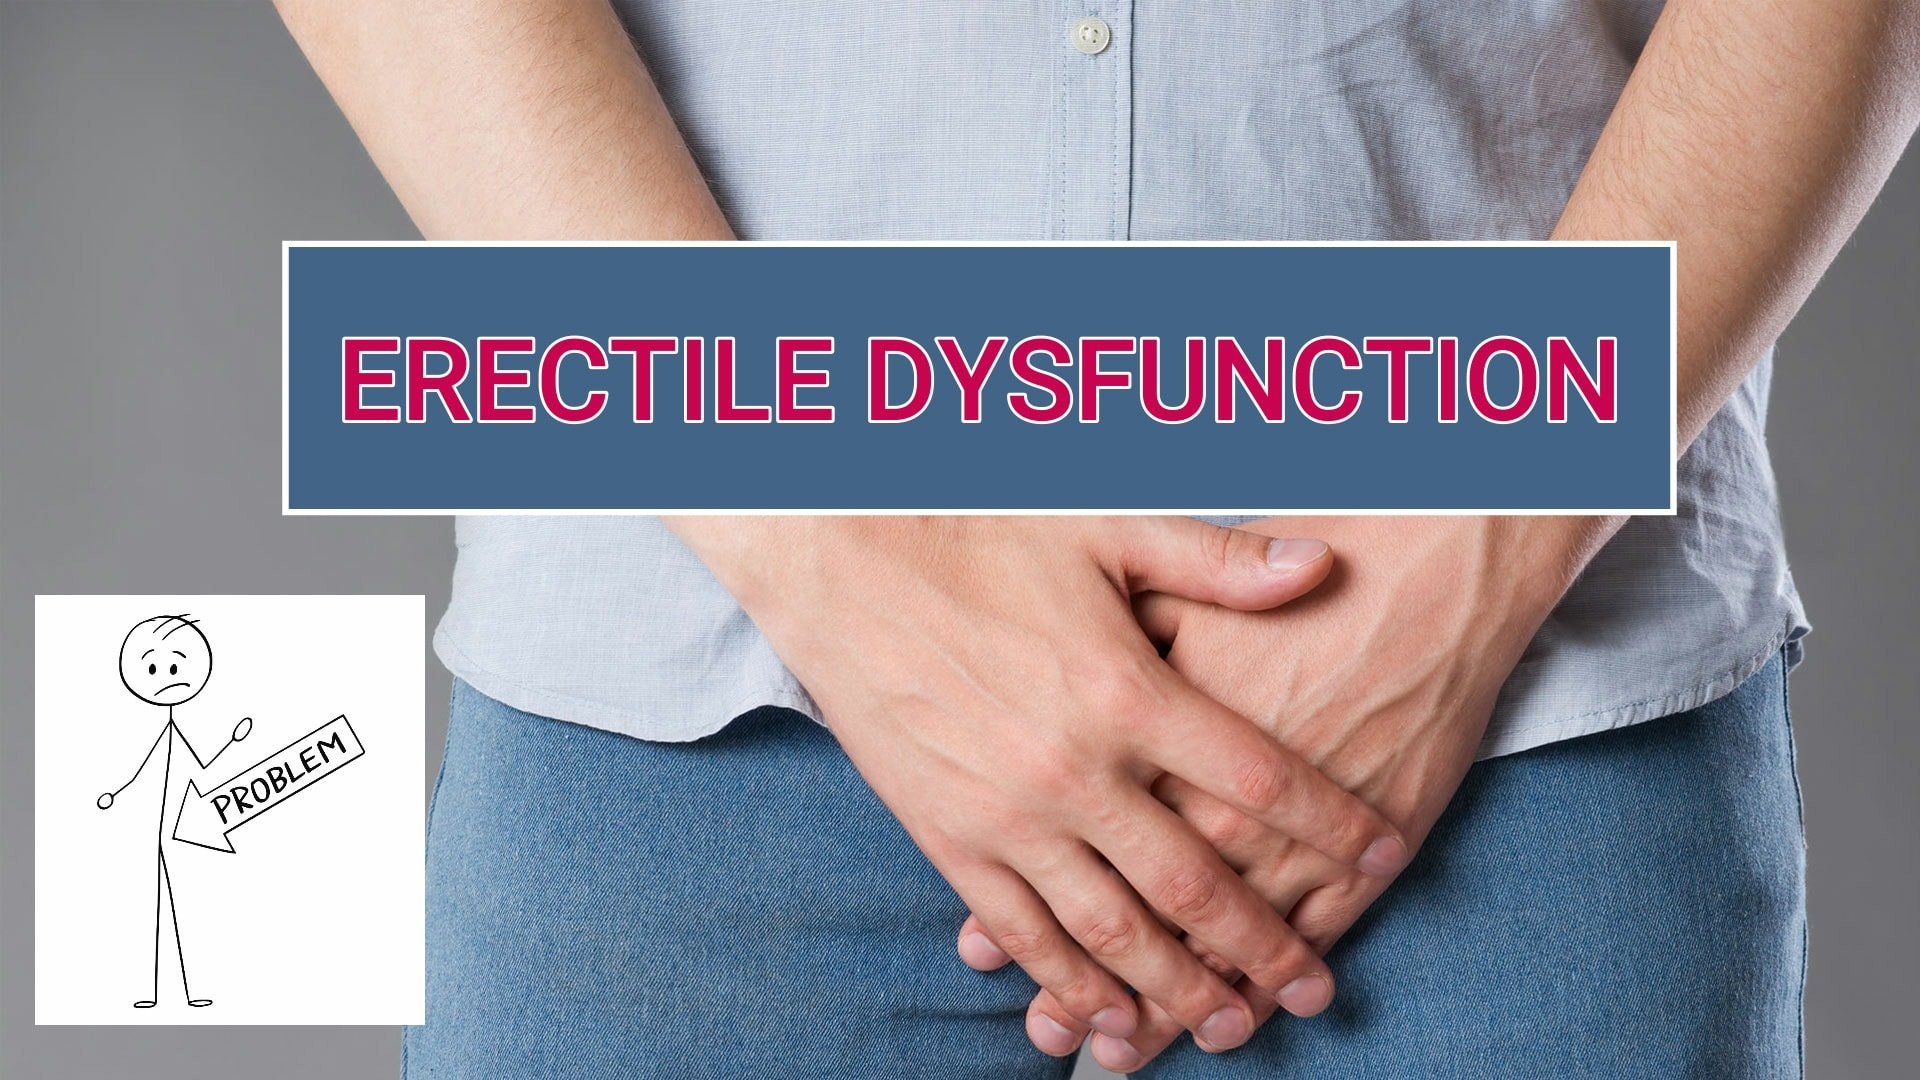 Let's Get a Better Hand at Curing Erectile Dysfunction